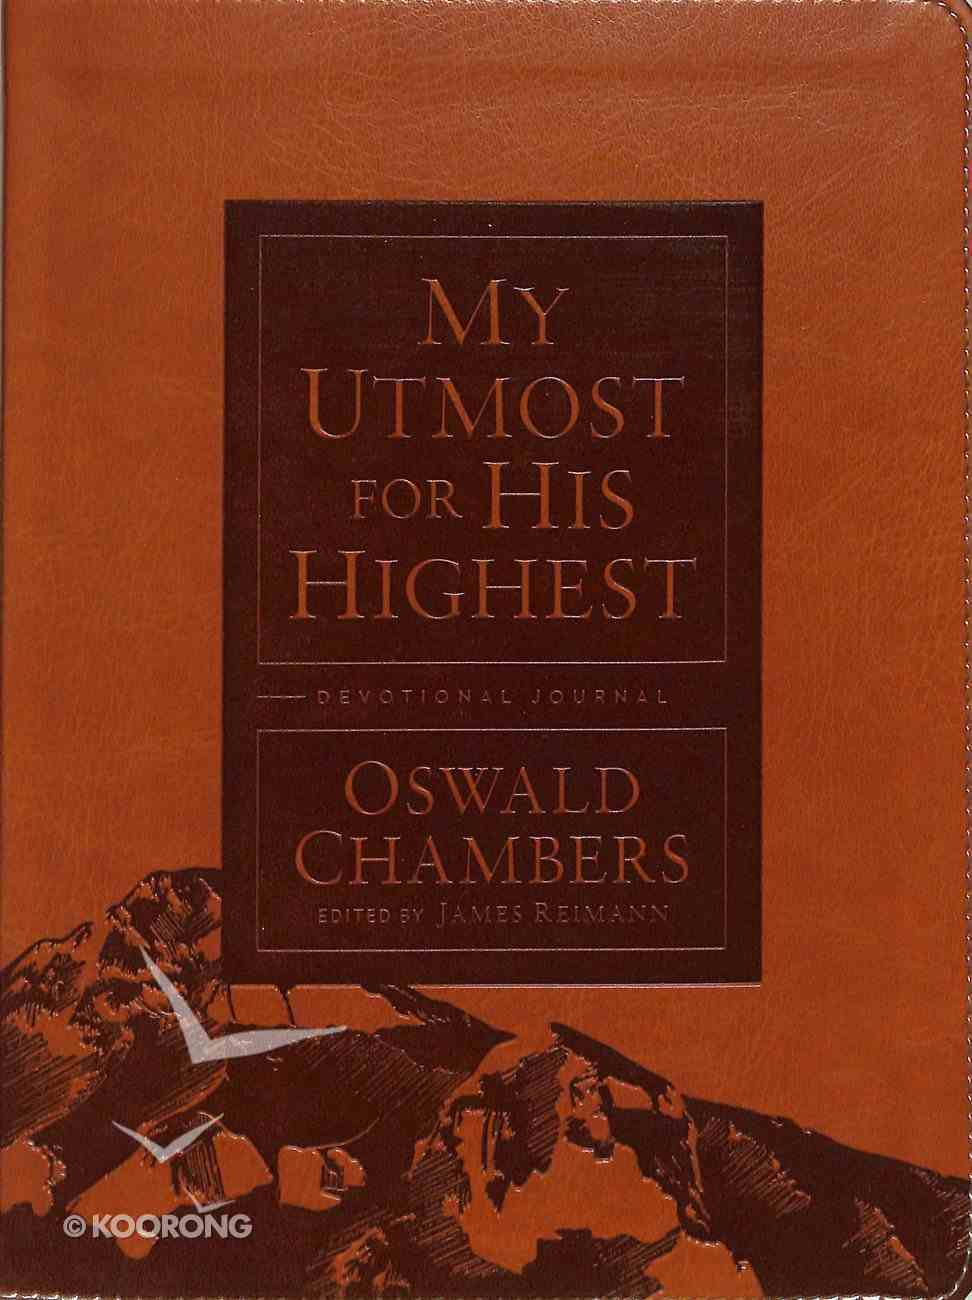 My Utmost For His Highest (Devotional Journal) Imitation Leather